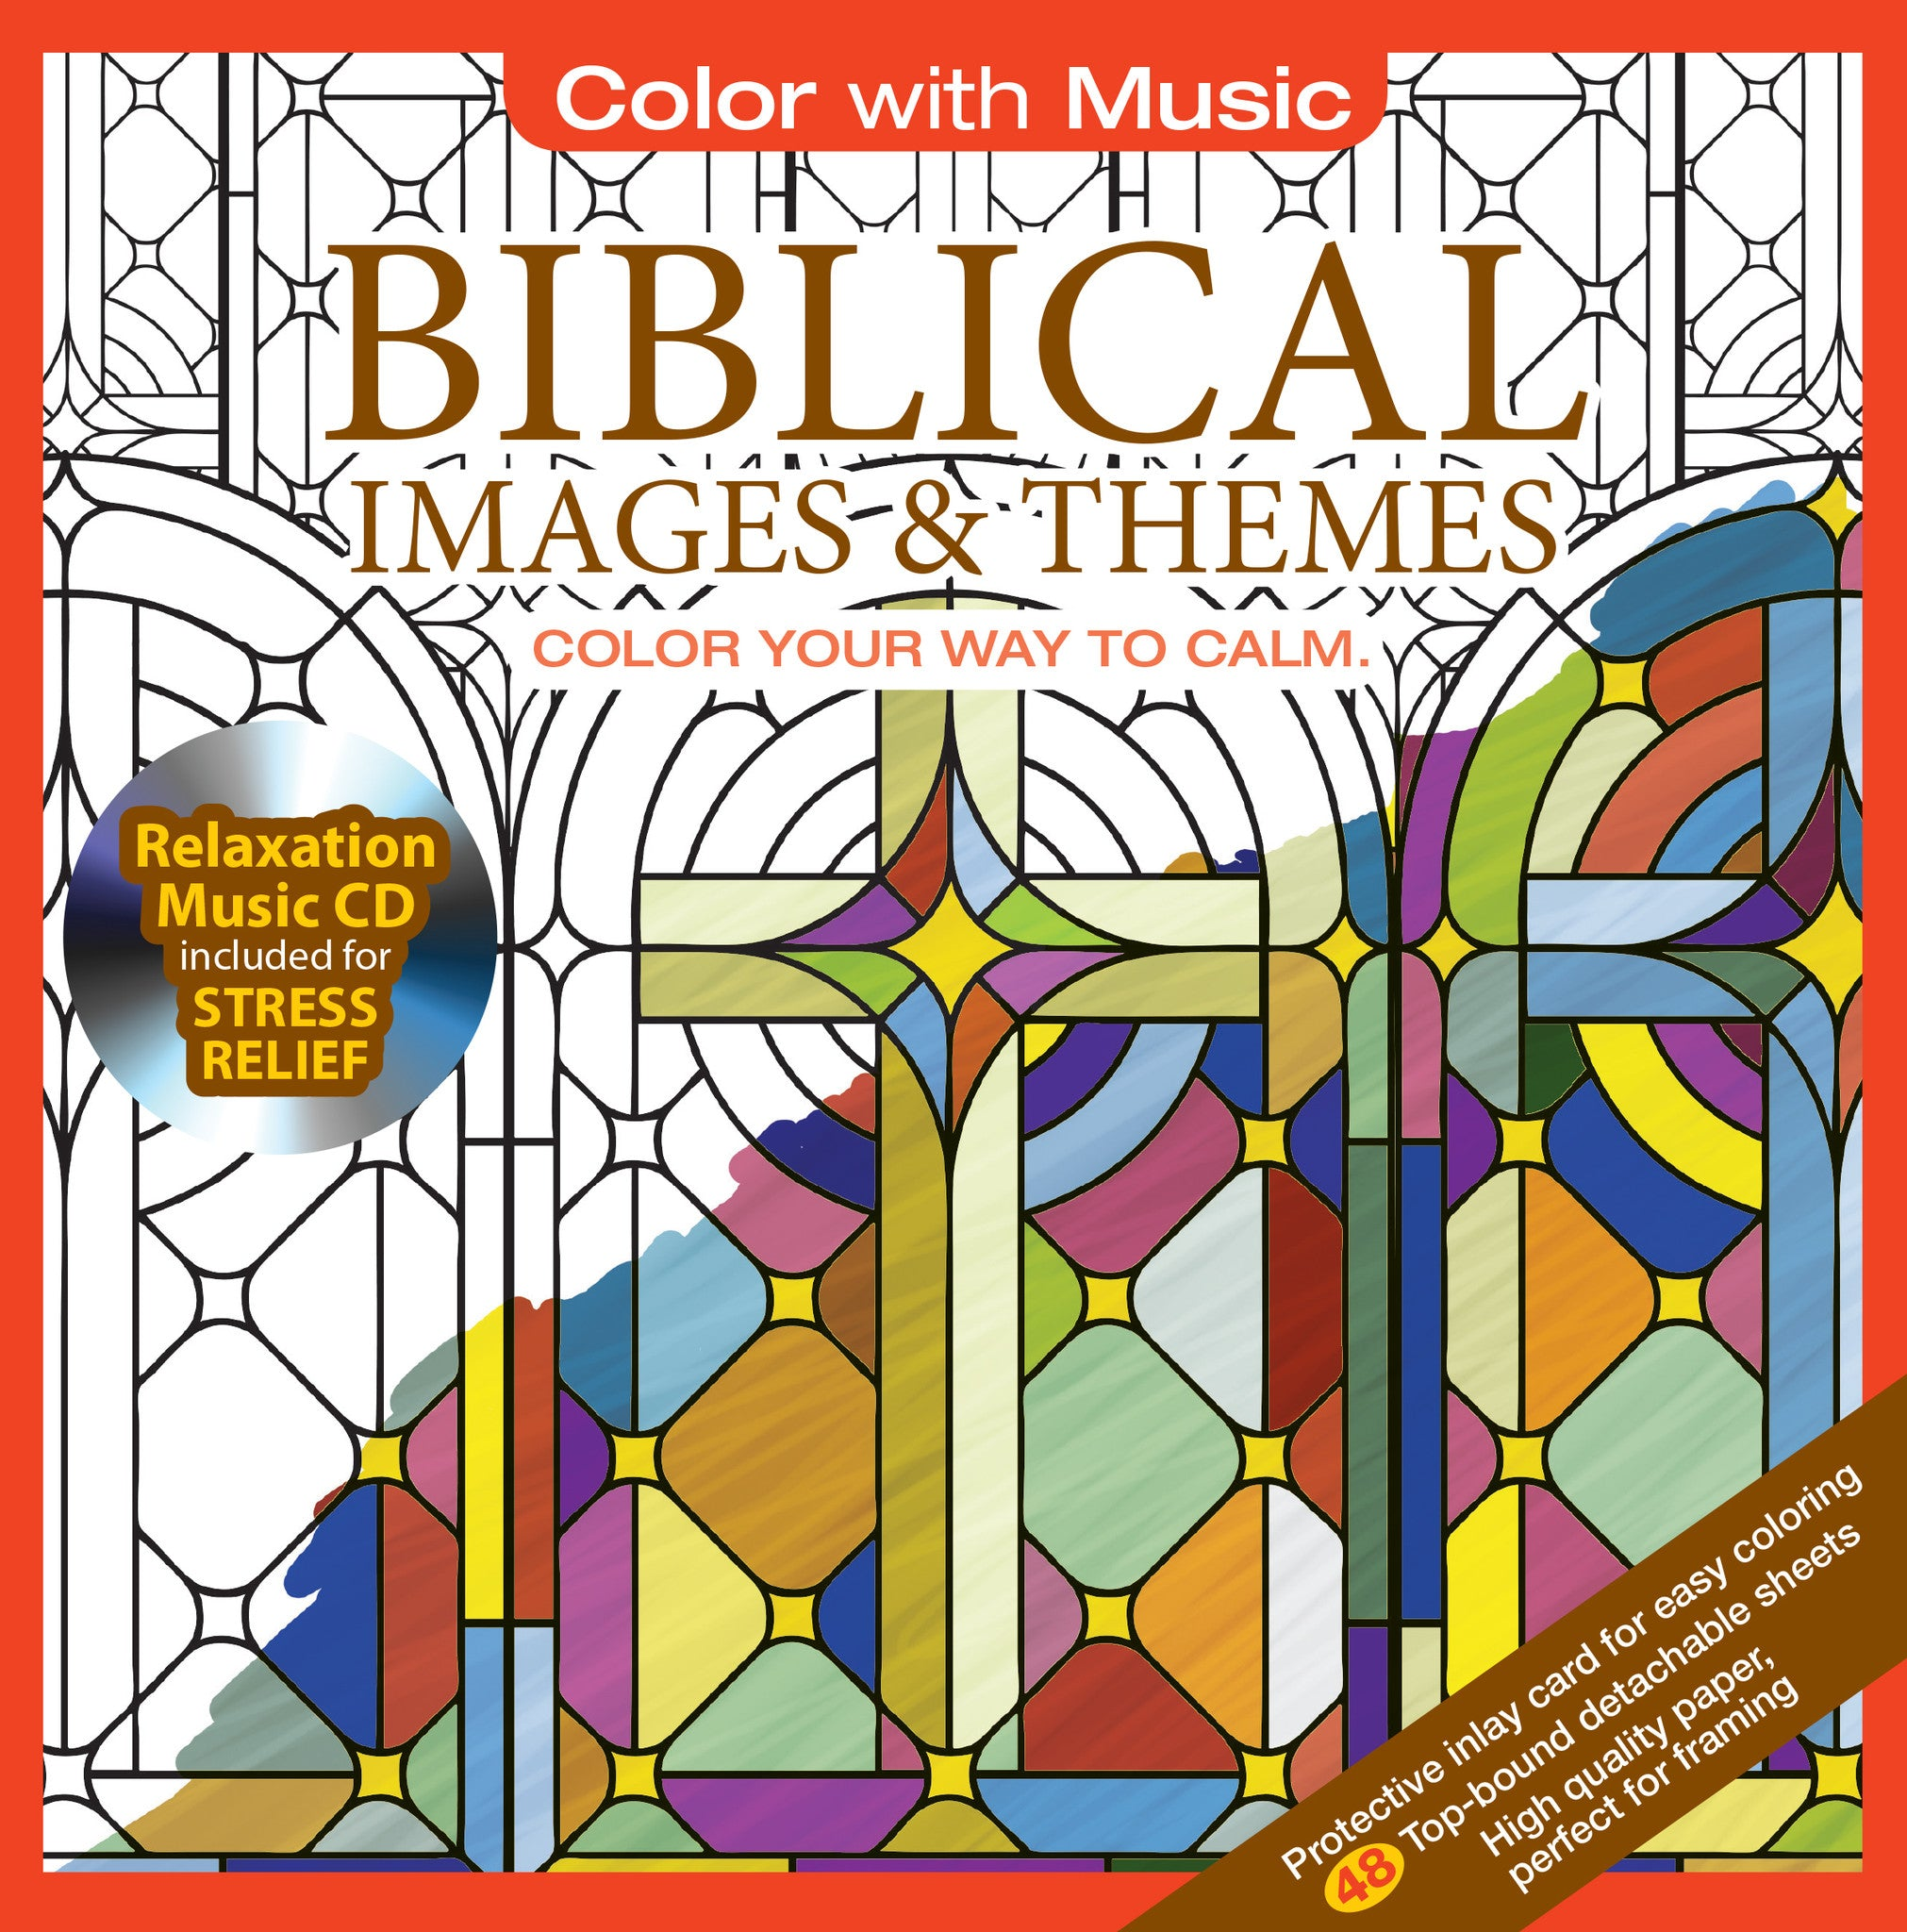 Color With Music Biblical Images Themes Adult Coloring Book Cover